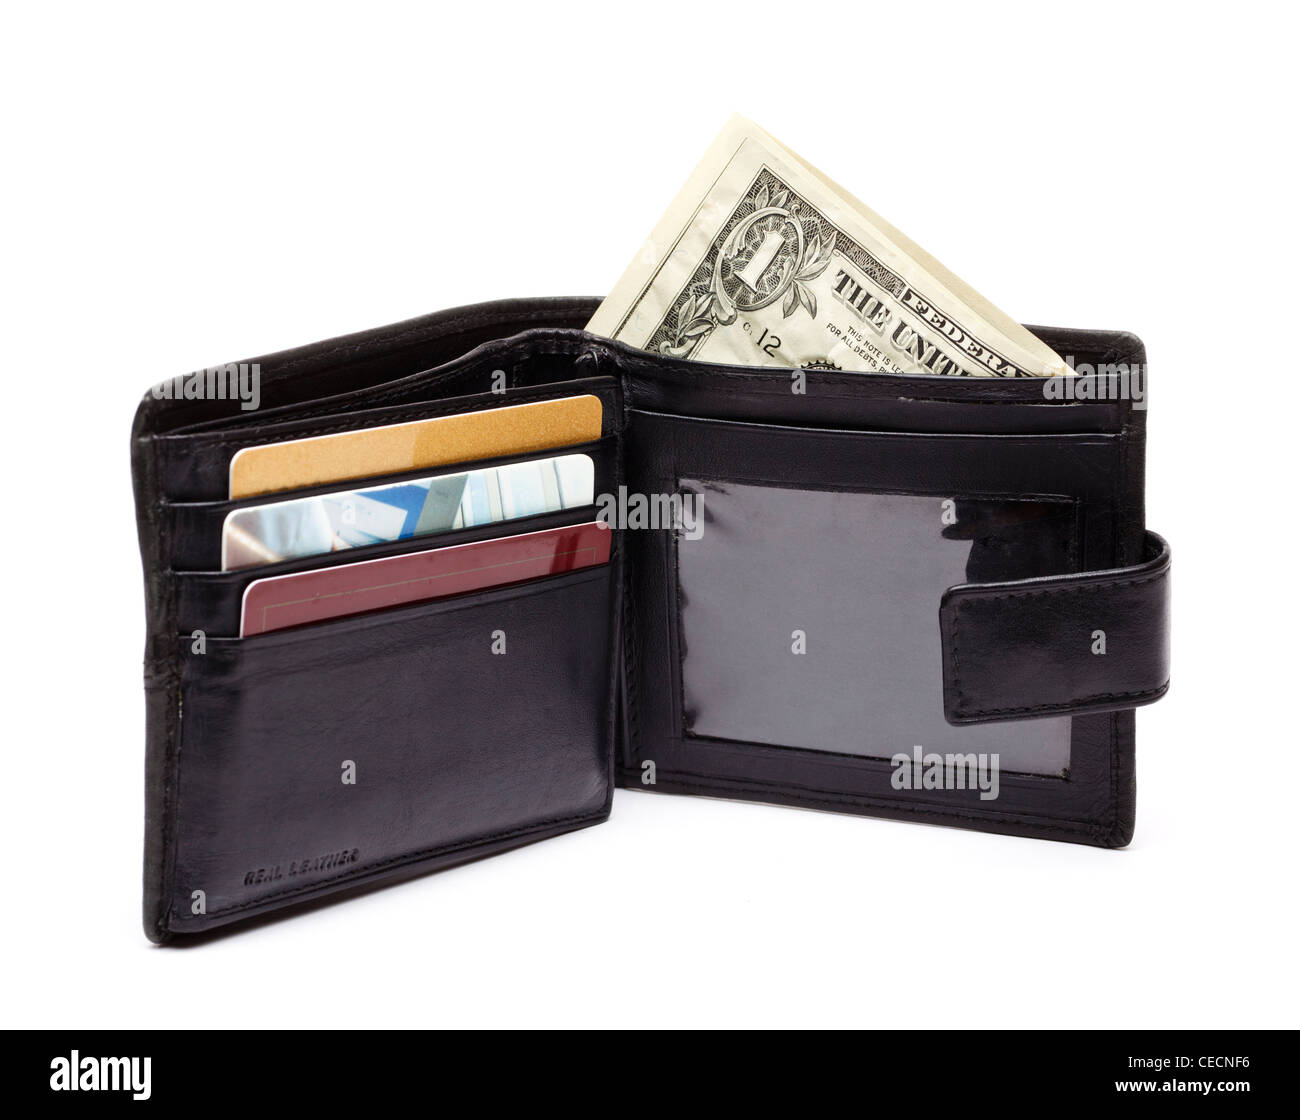 Wallet with dollars - on white background - Stock Image